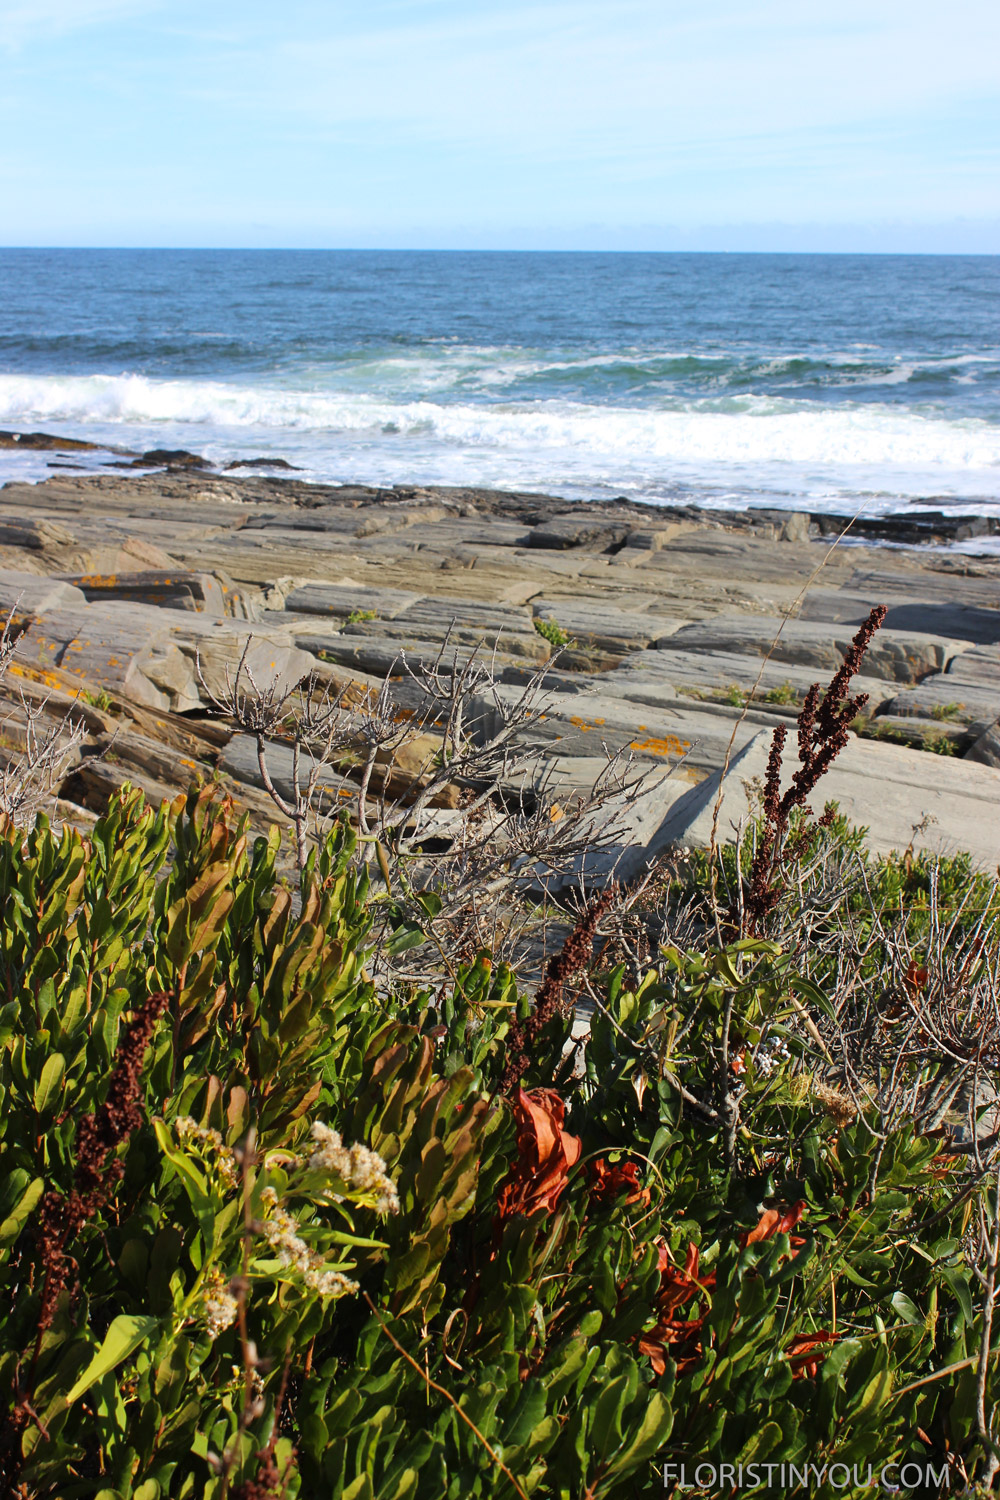 You will see the windswept wildflowers growing above the rocks.